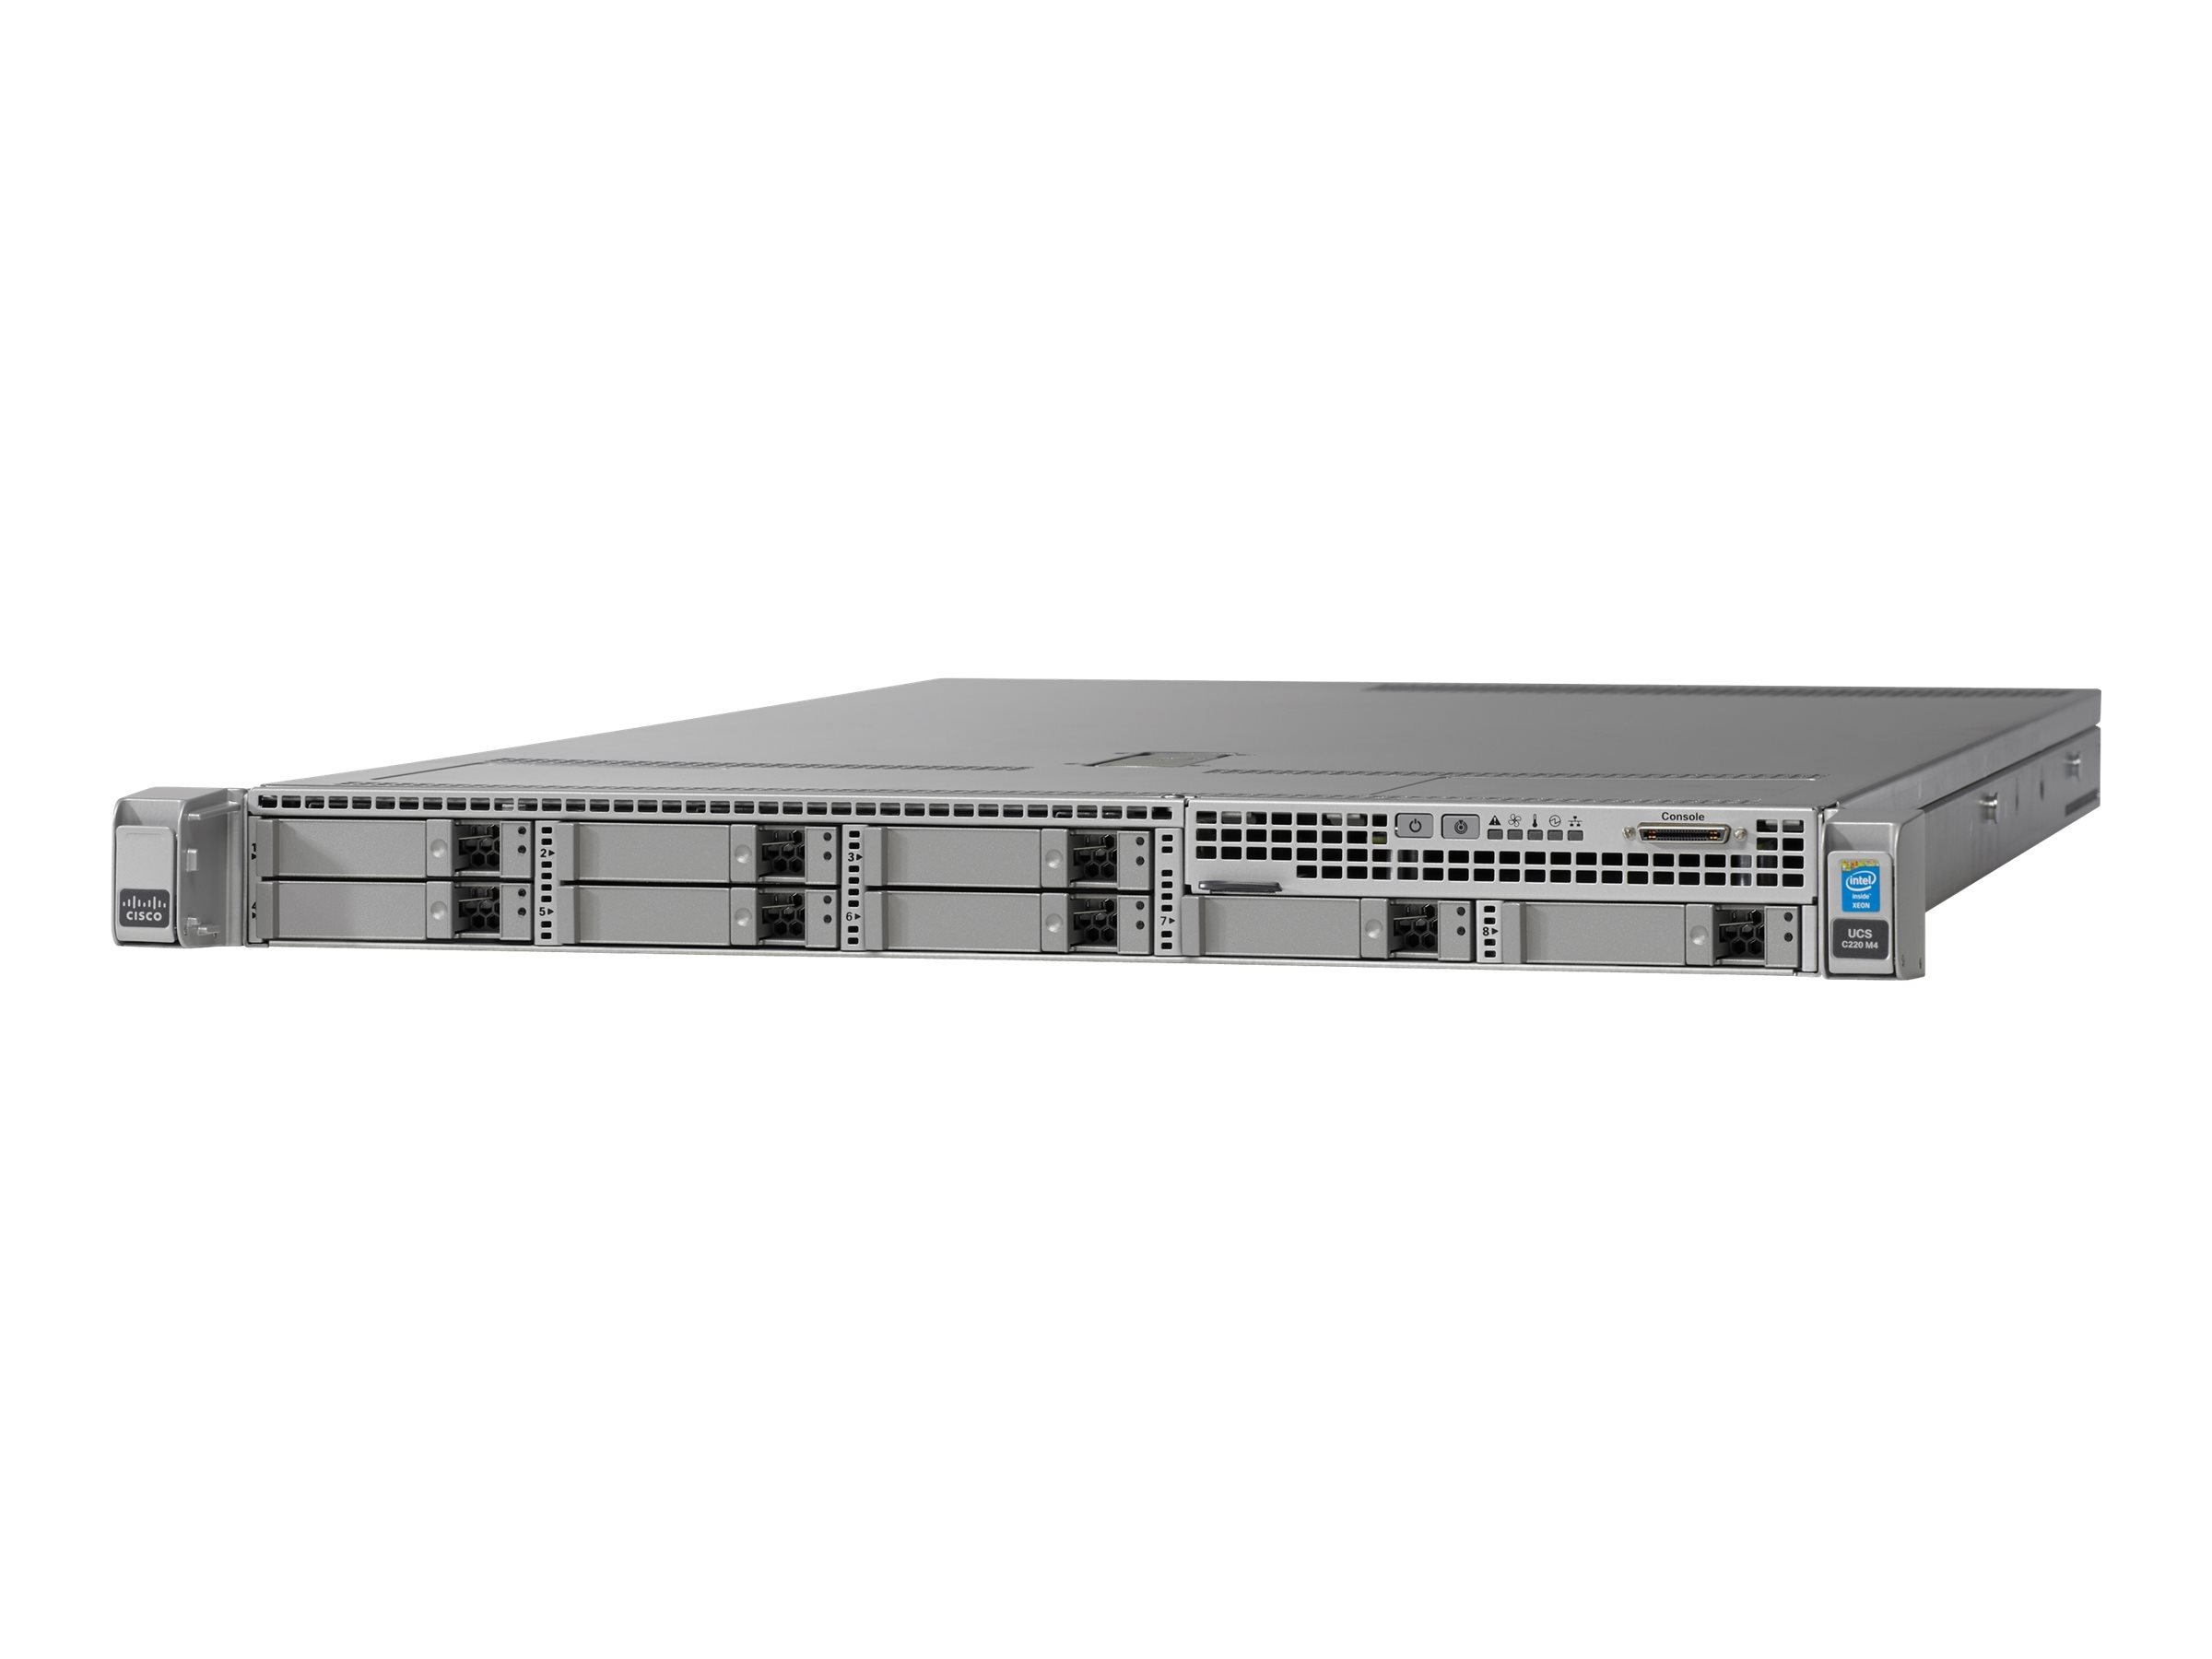 Cisco UCS-SP-C220M4-A1 Image 1